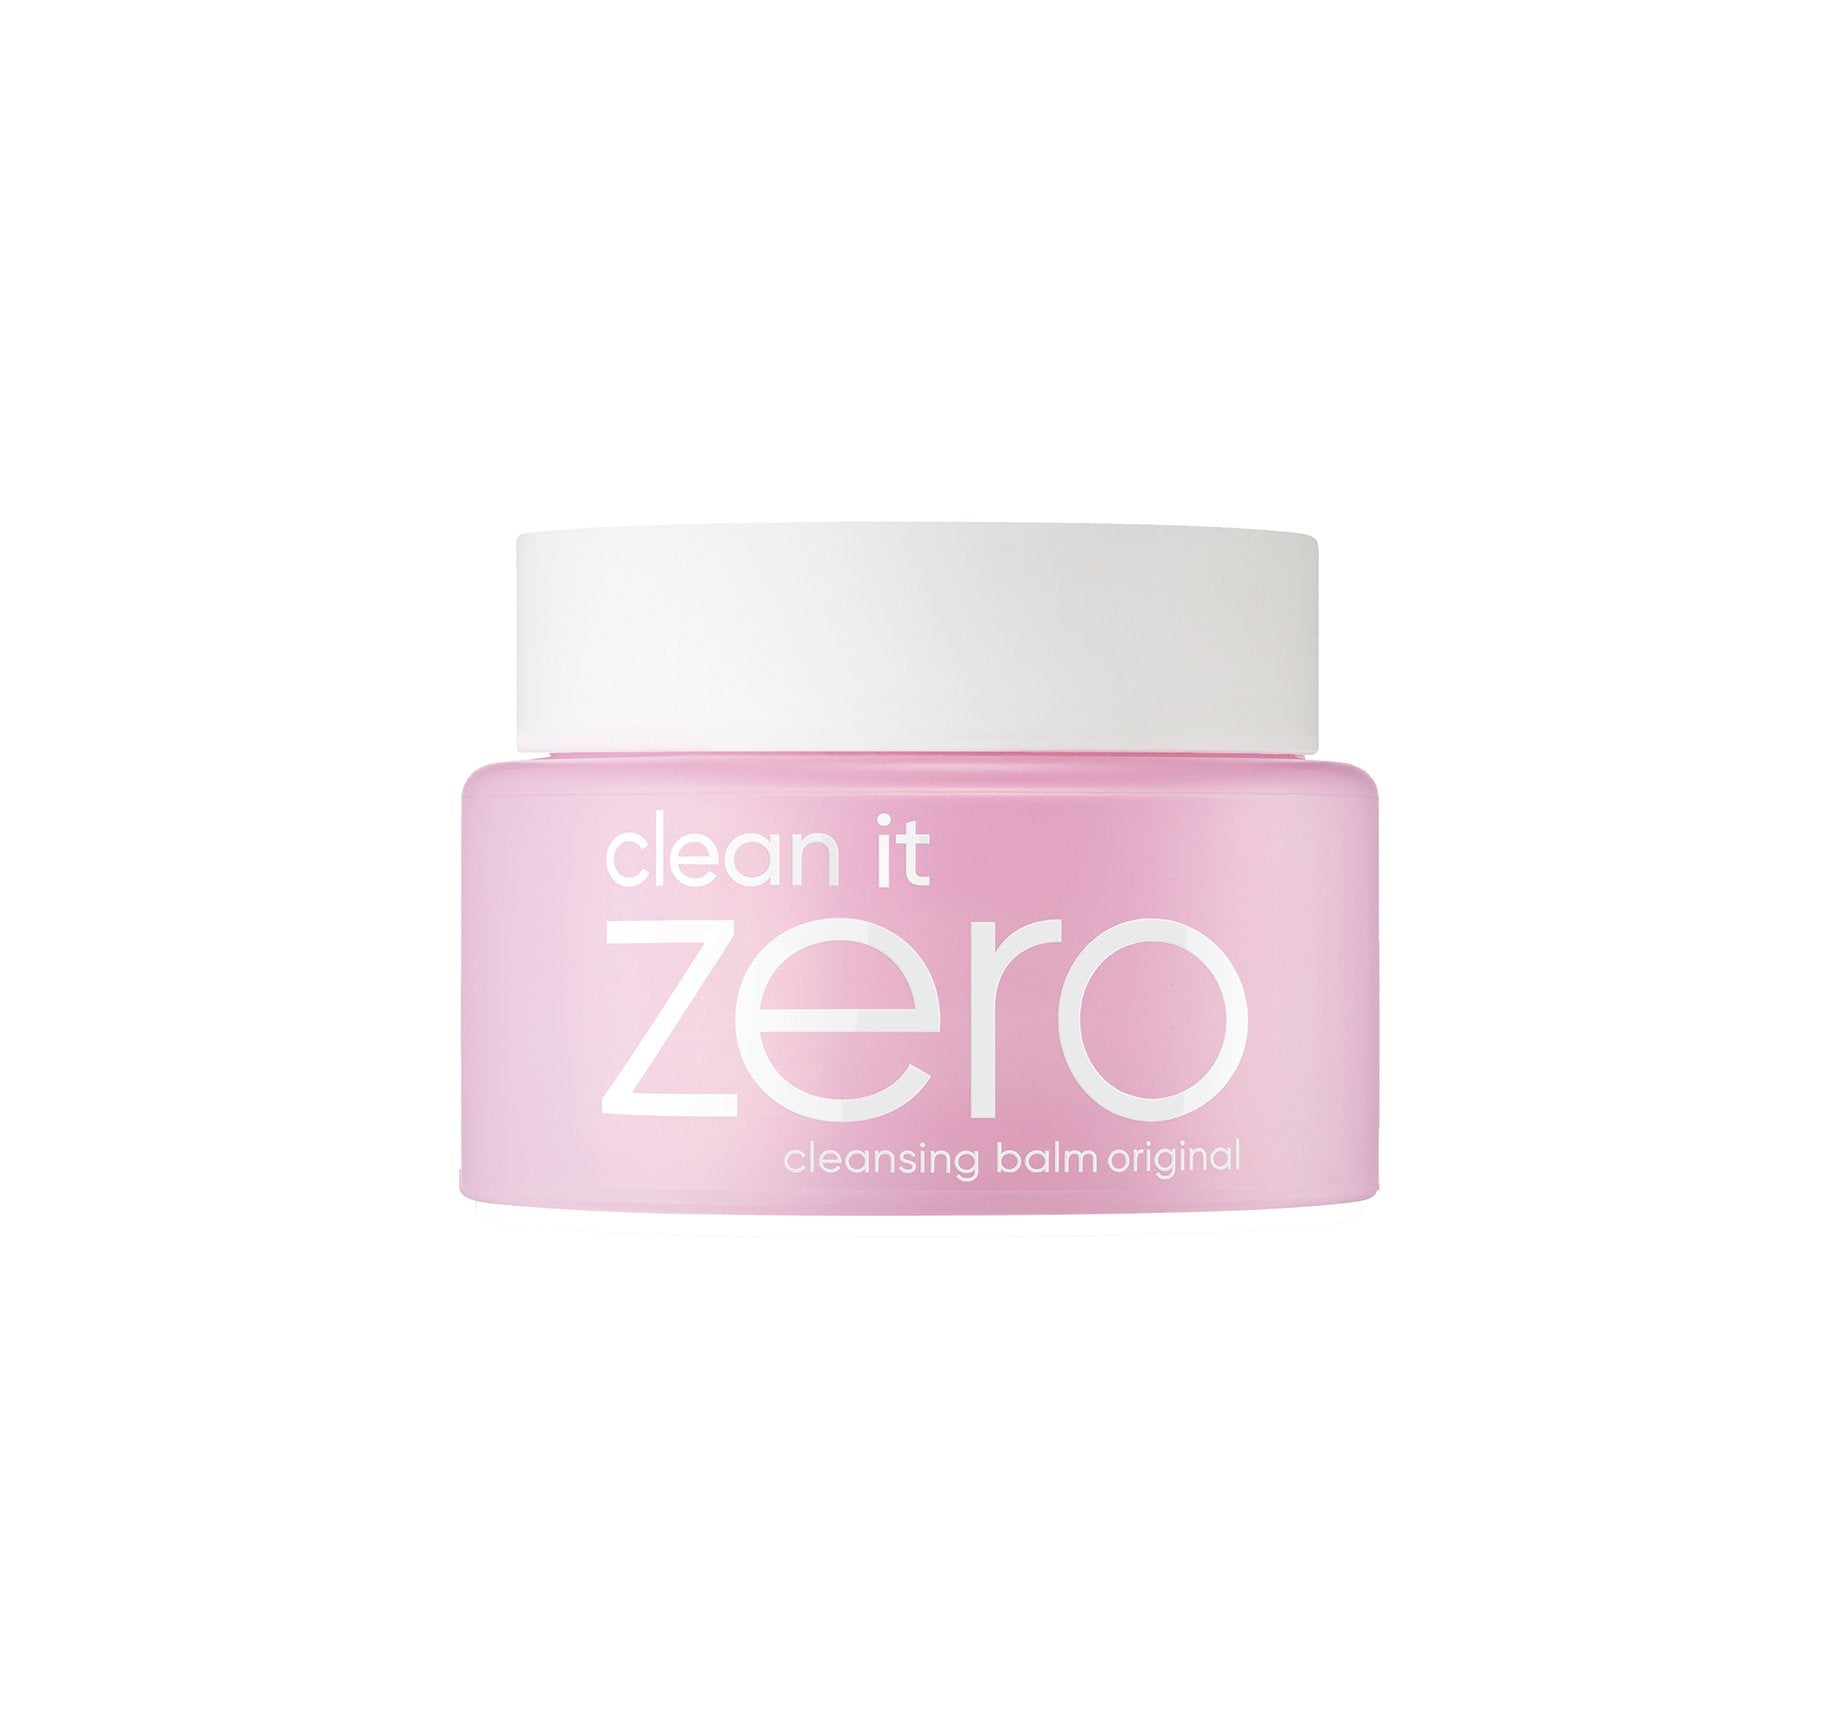 MINI CLEAN IT ZERO CLEANSING BALM ORIGINAL, view larger image